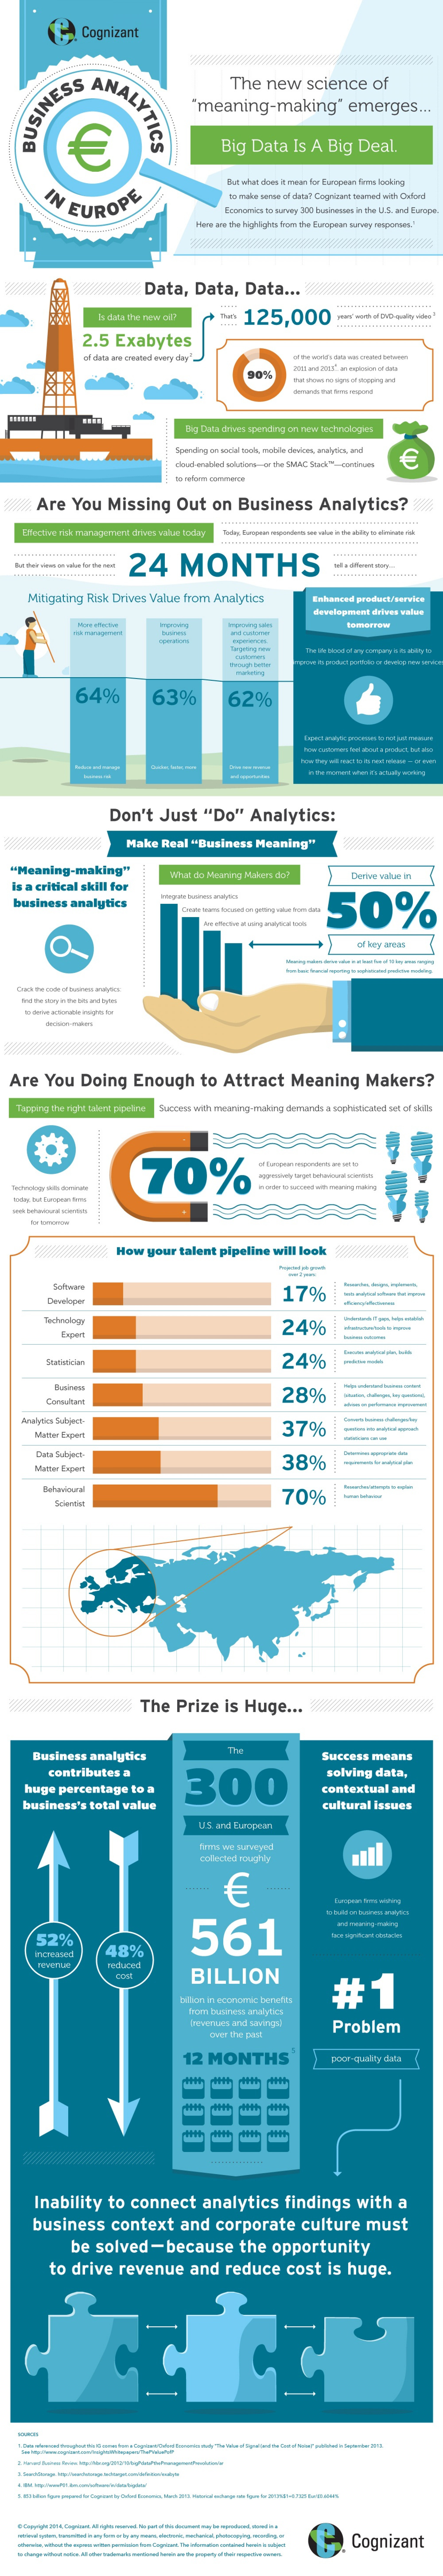 "Business Analytics in Europe: The New Science of ""Meaning-Making"" Emerges... Infographic"